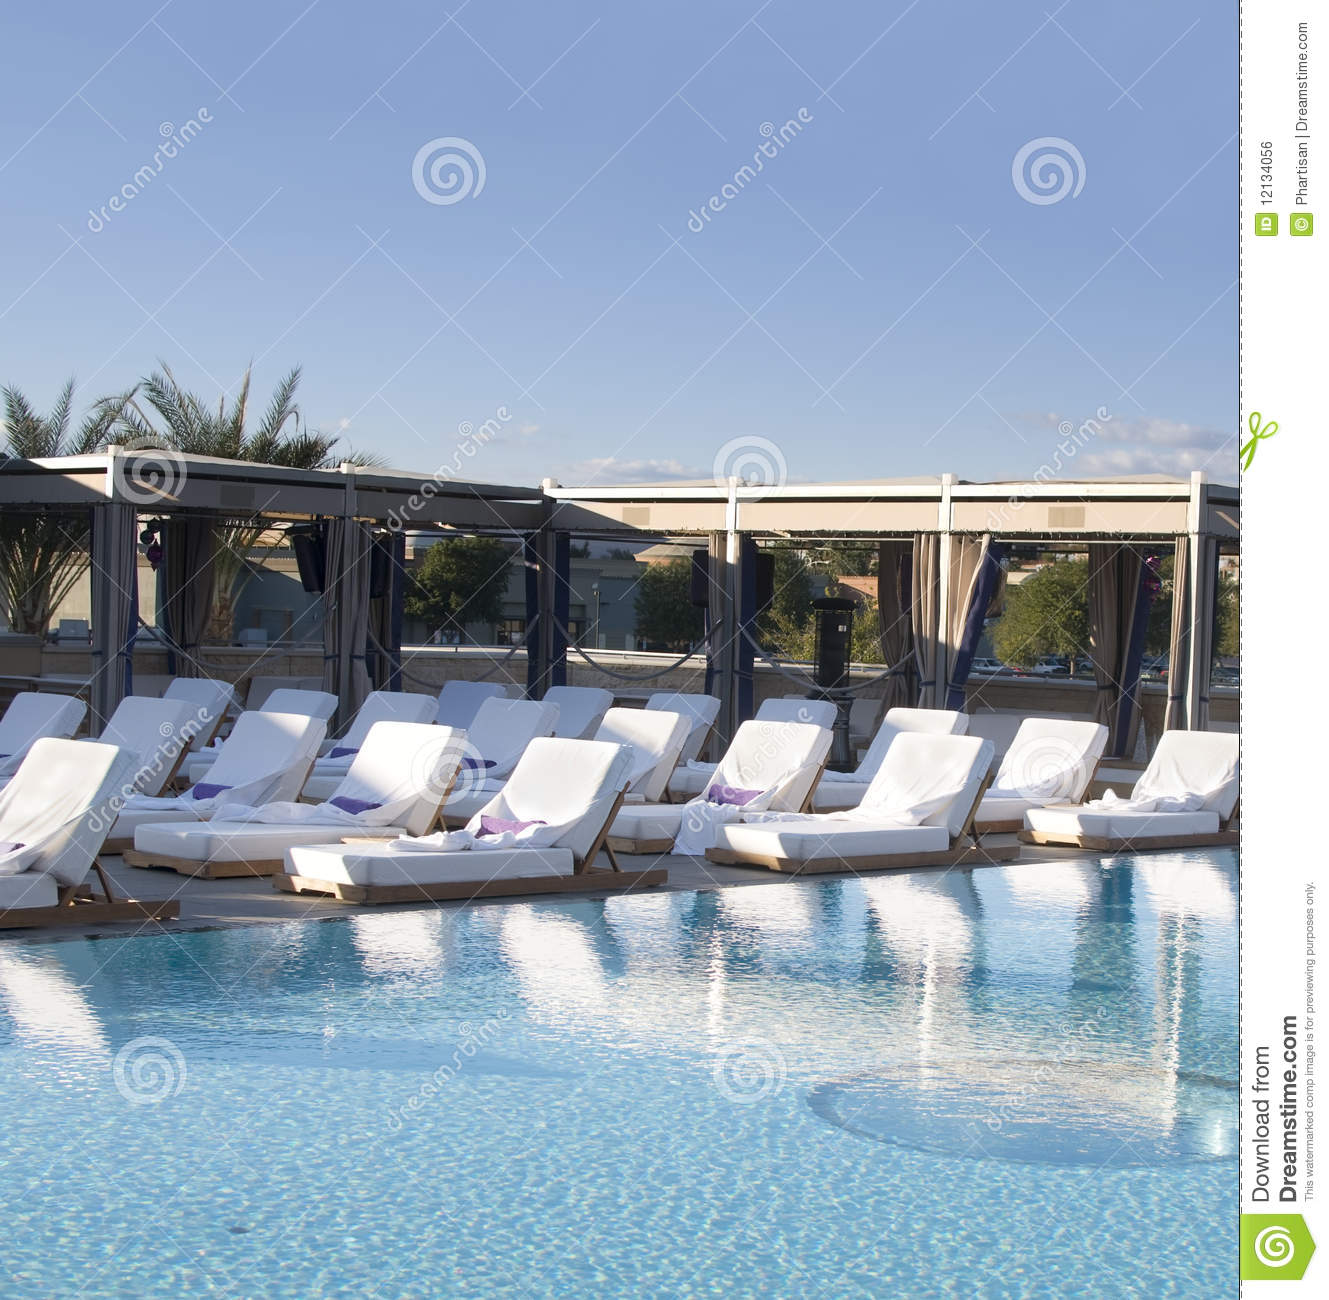 Spa luxury resort pool area royalty free stock photo for Luxury pool area